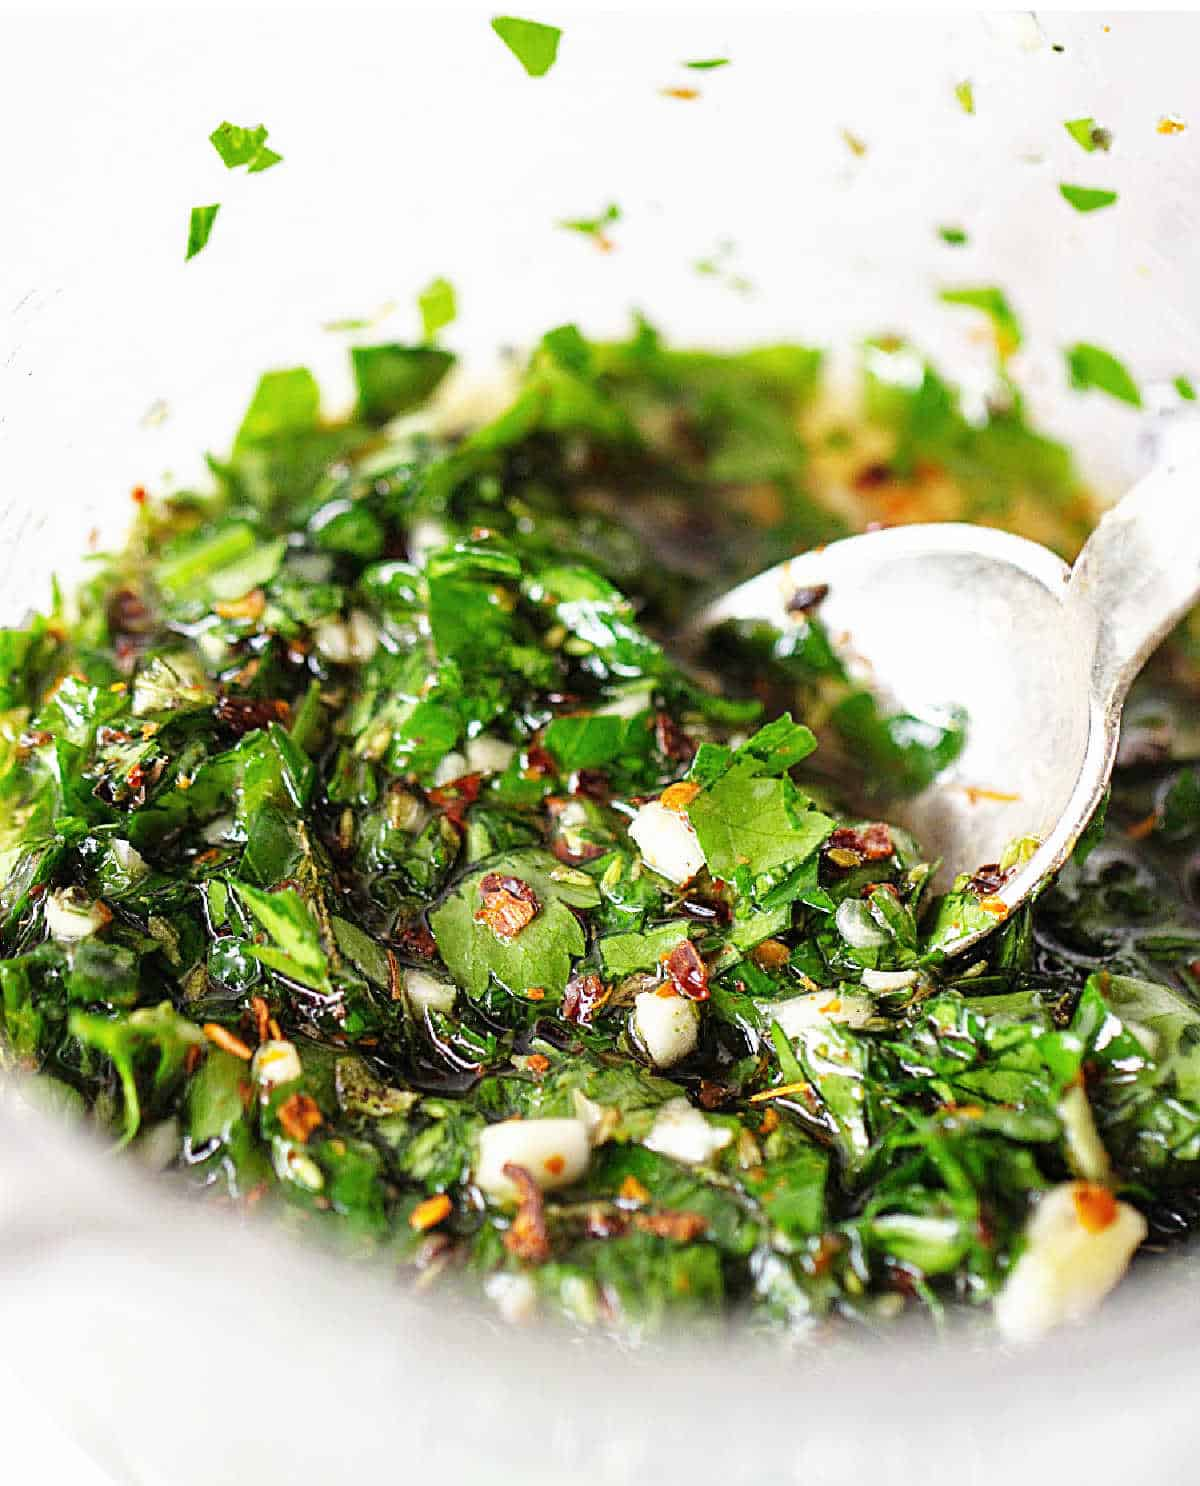 A glass jar with chimichurri sauce, a silver spoon, close up image